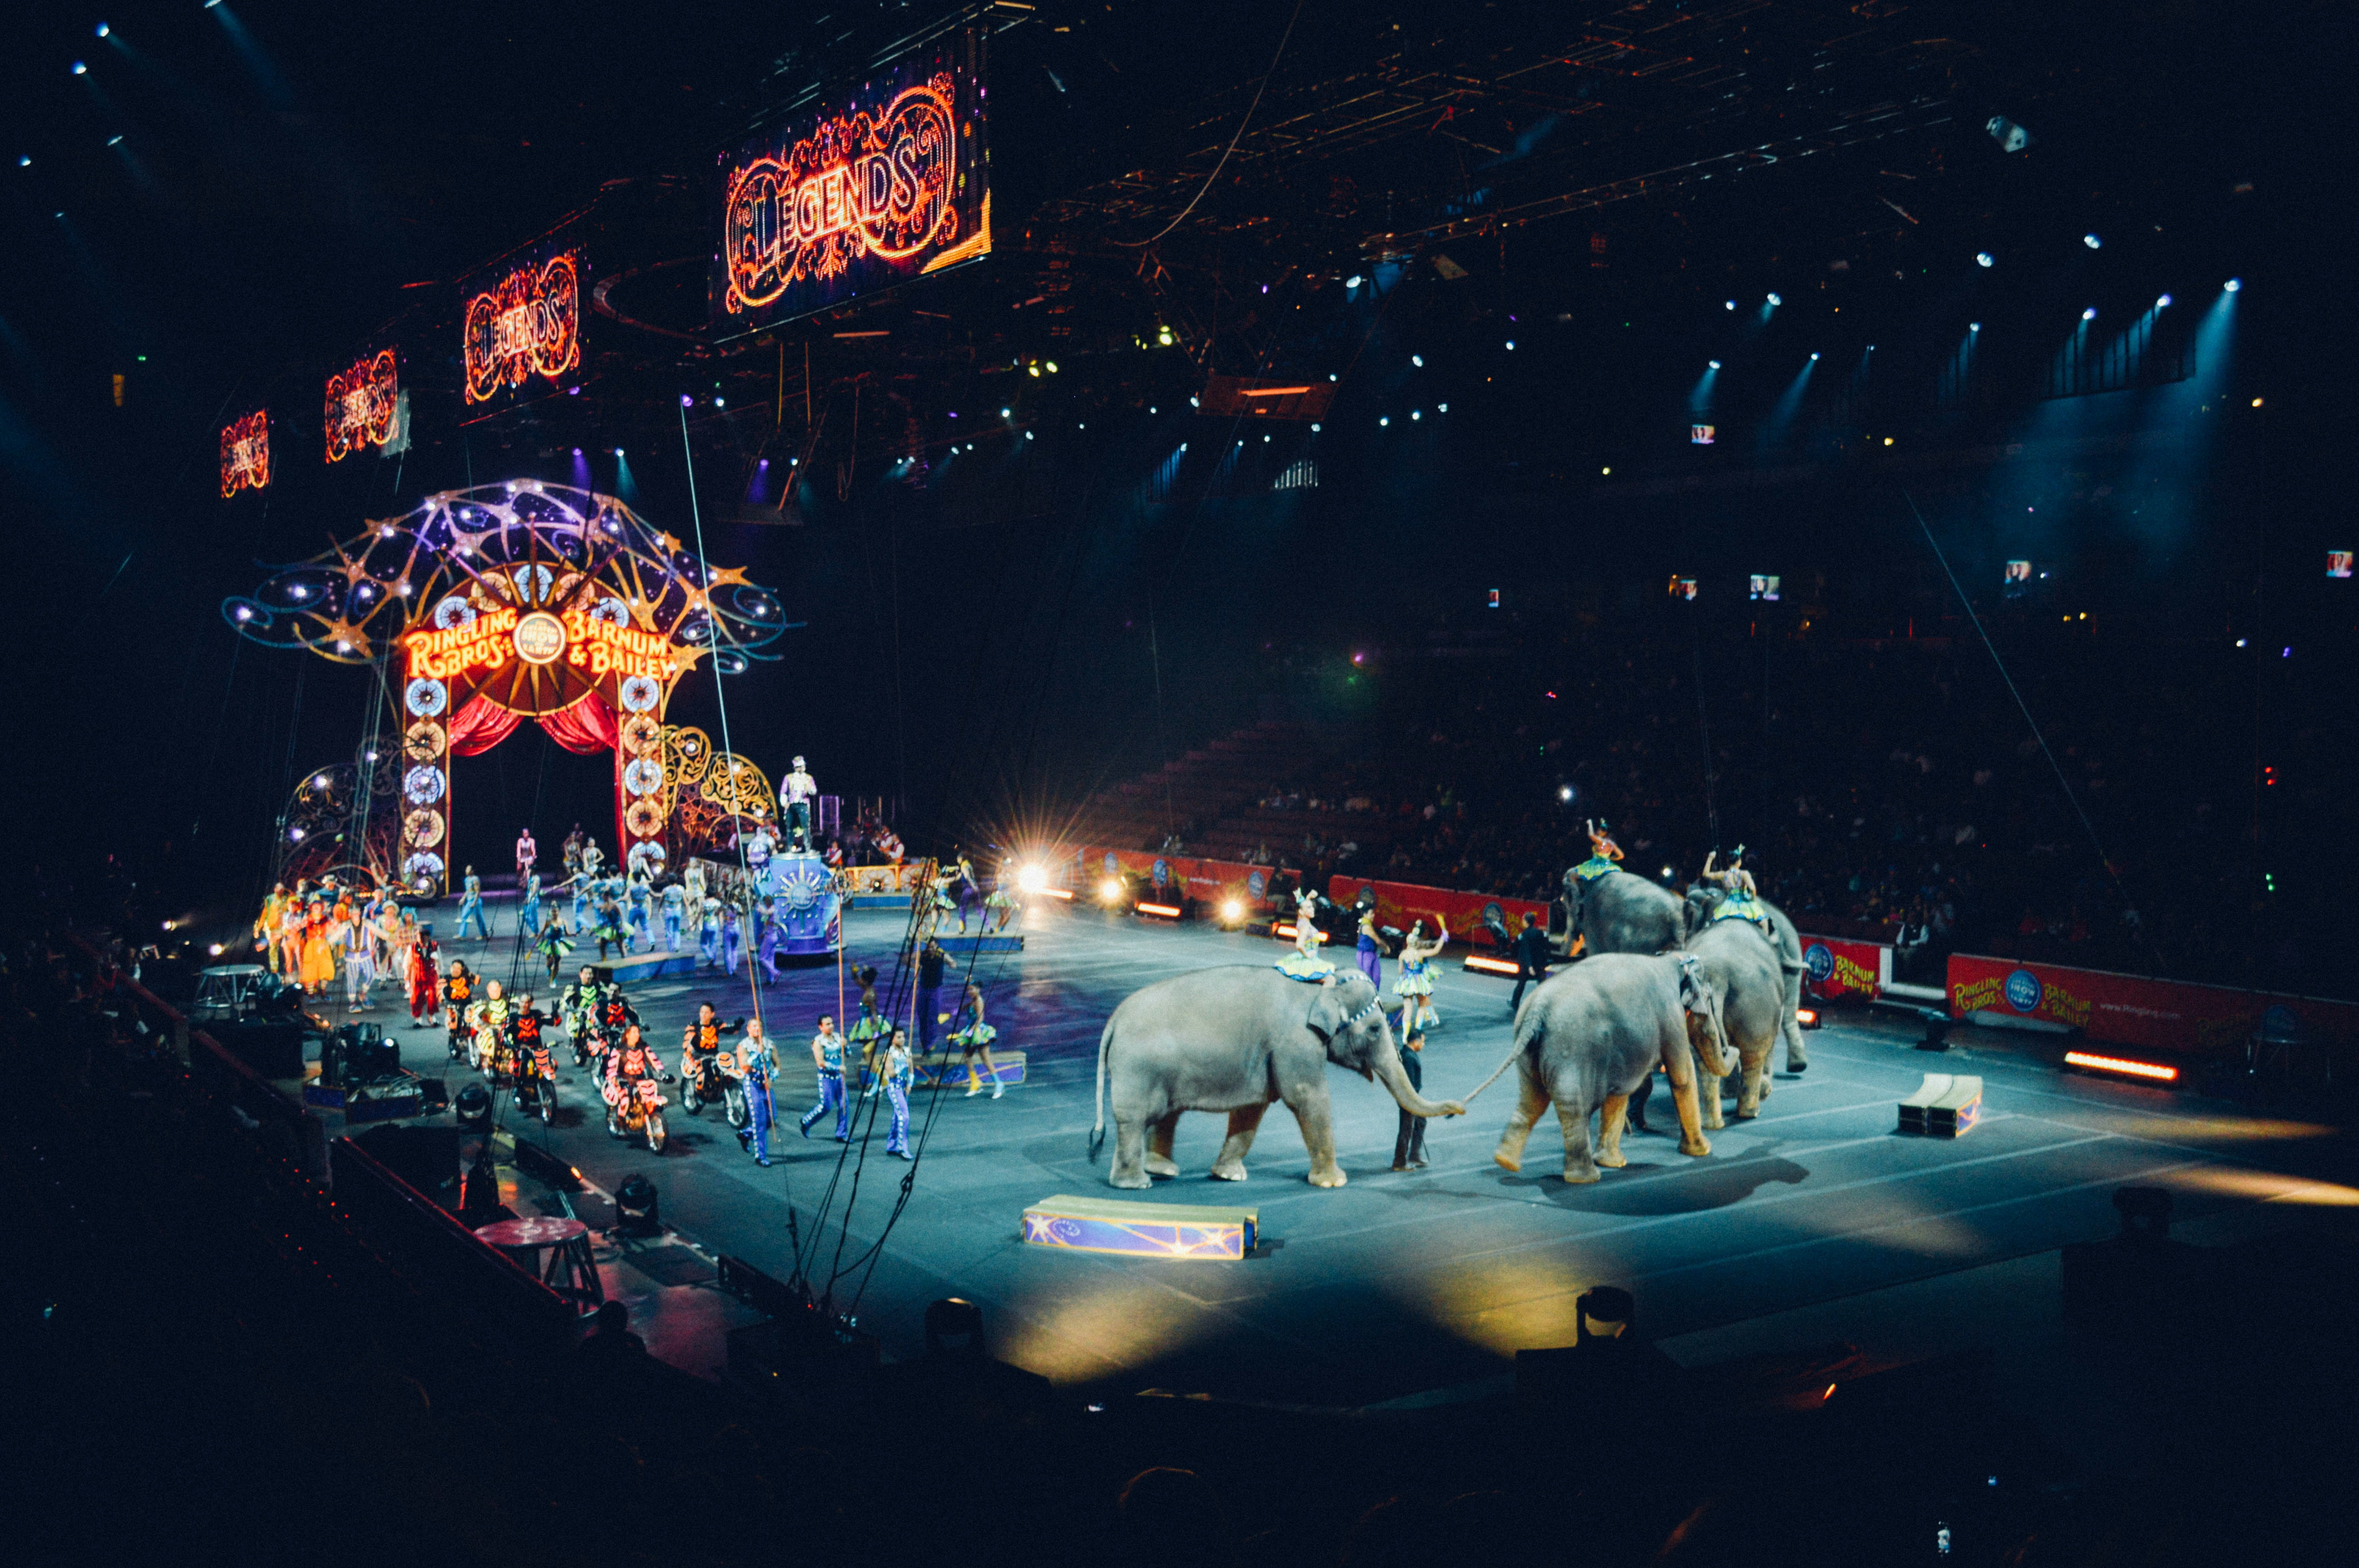 gray elephants performing on circus